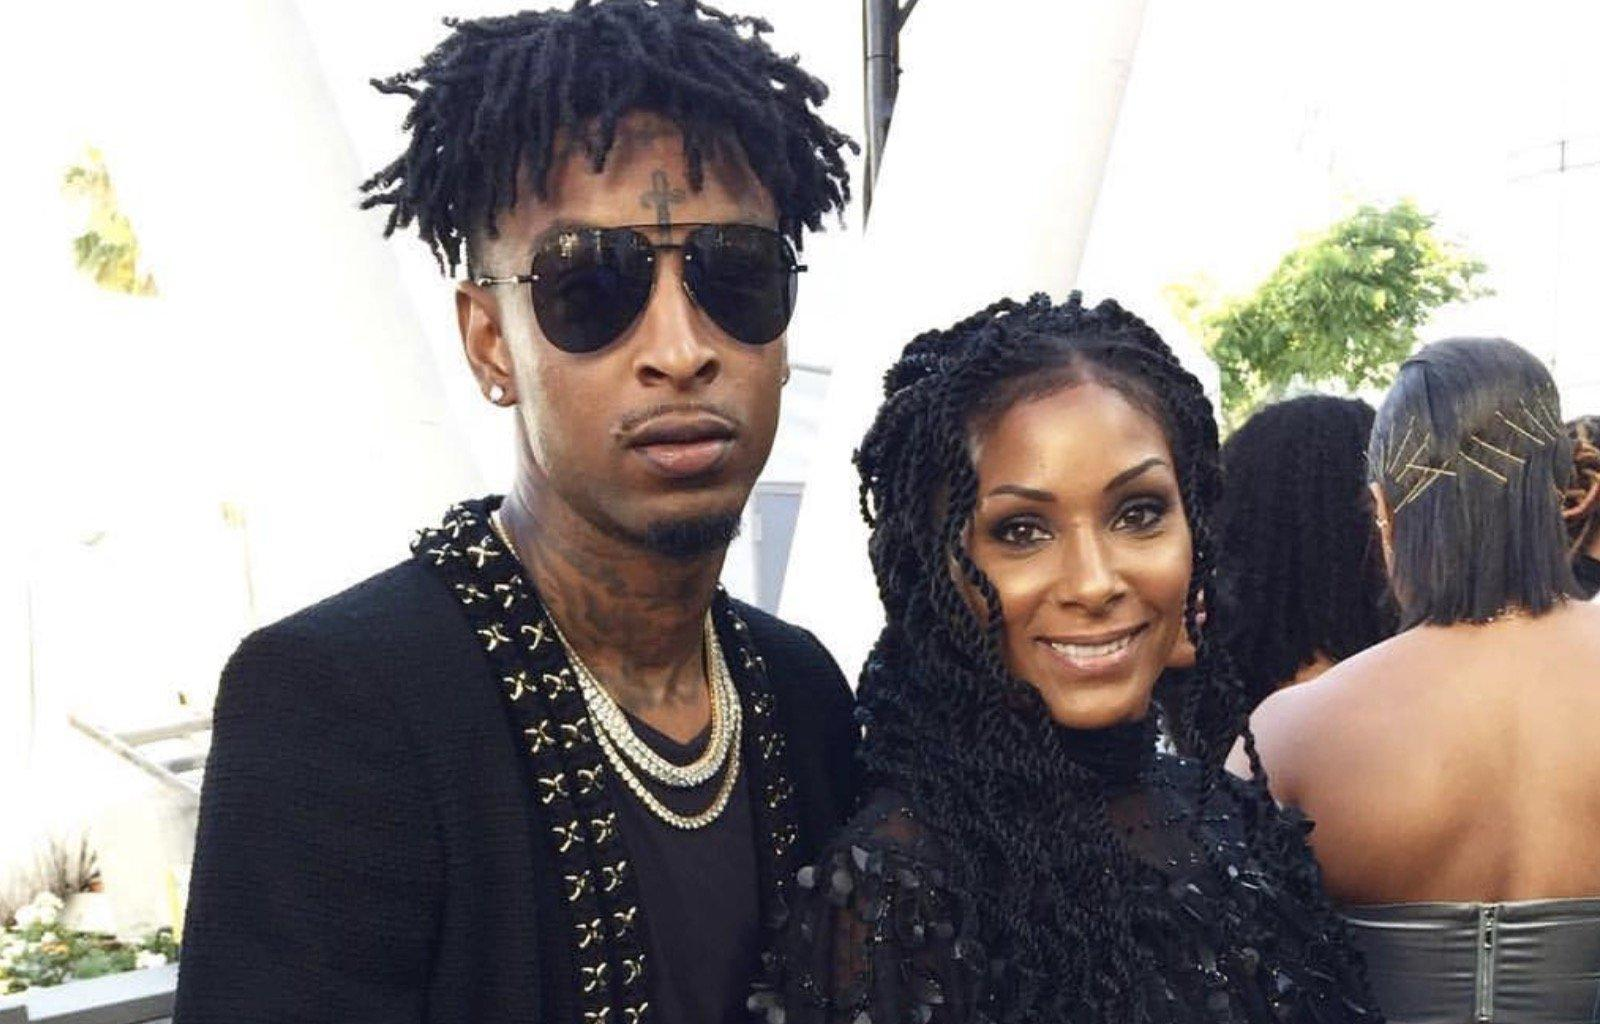 21 Savage's Mom Is Grateful To Jay-Z, Cardi B And More After He Got Released From Jail - Read Her Message